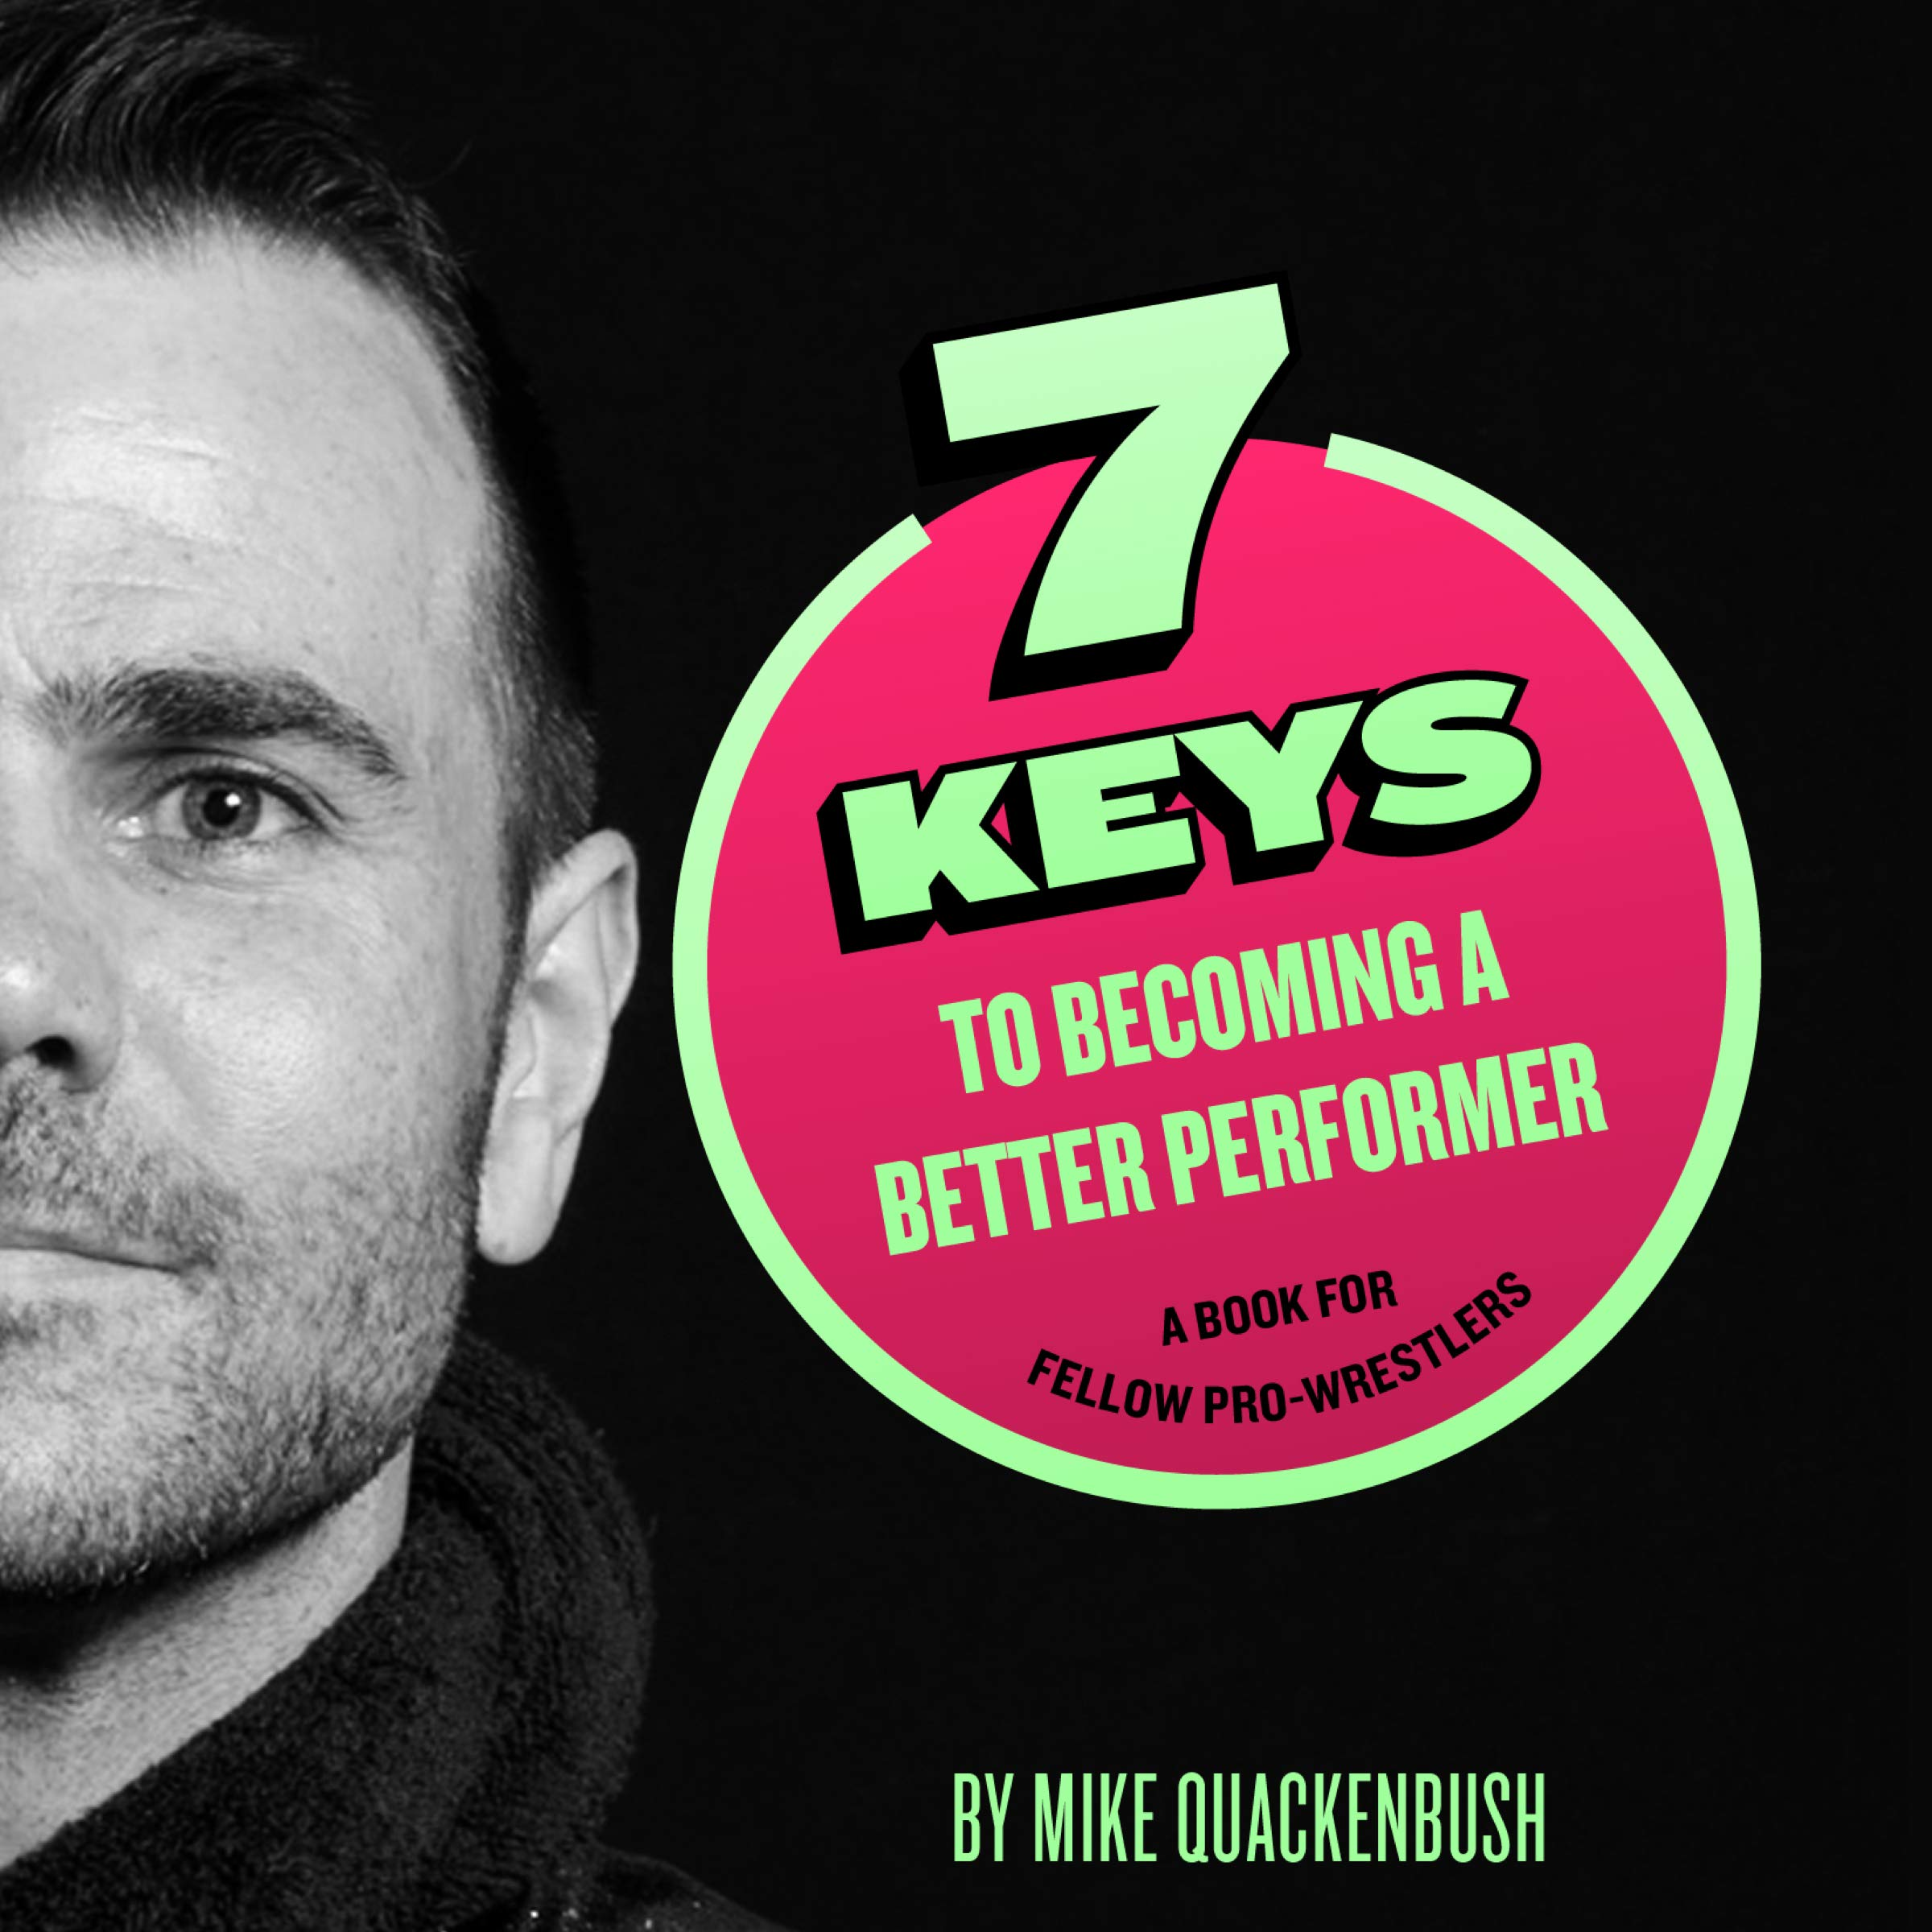 7 Keys To Becoming A Better Performer  A Book For Fellow Pro Wrestlers